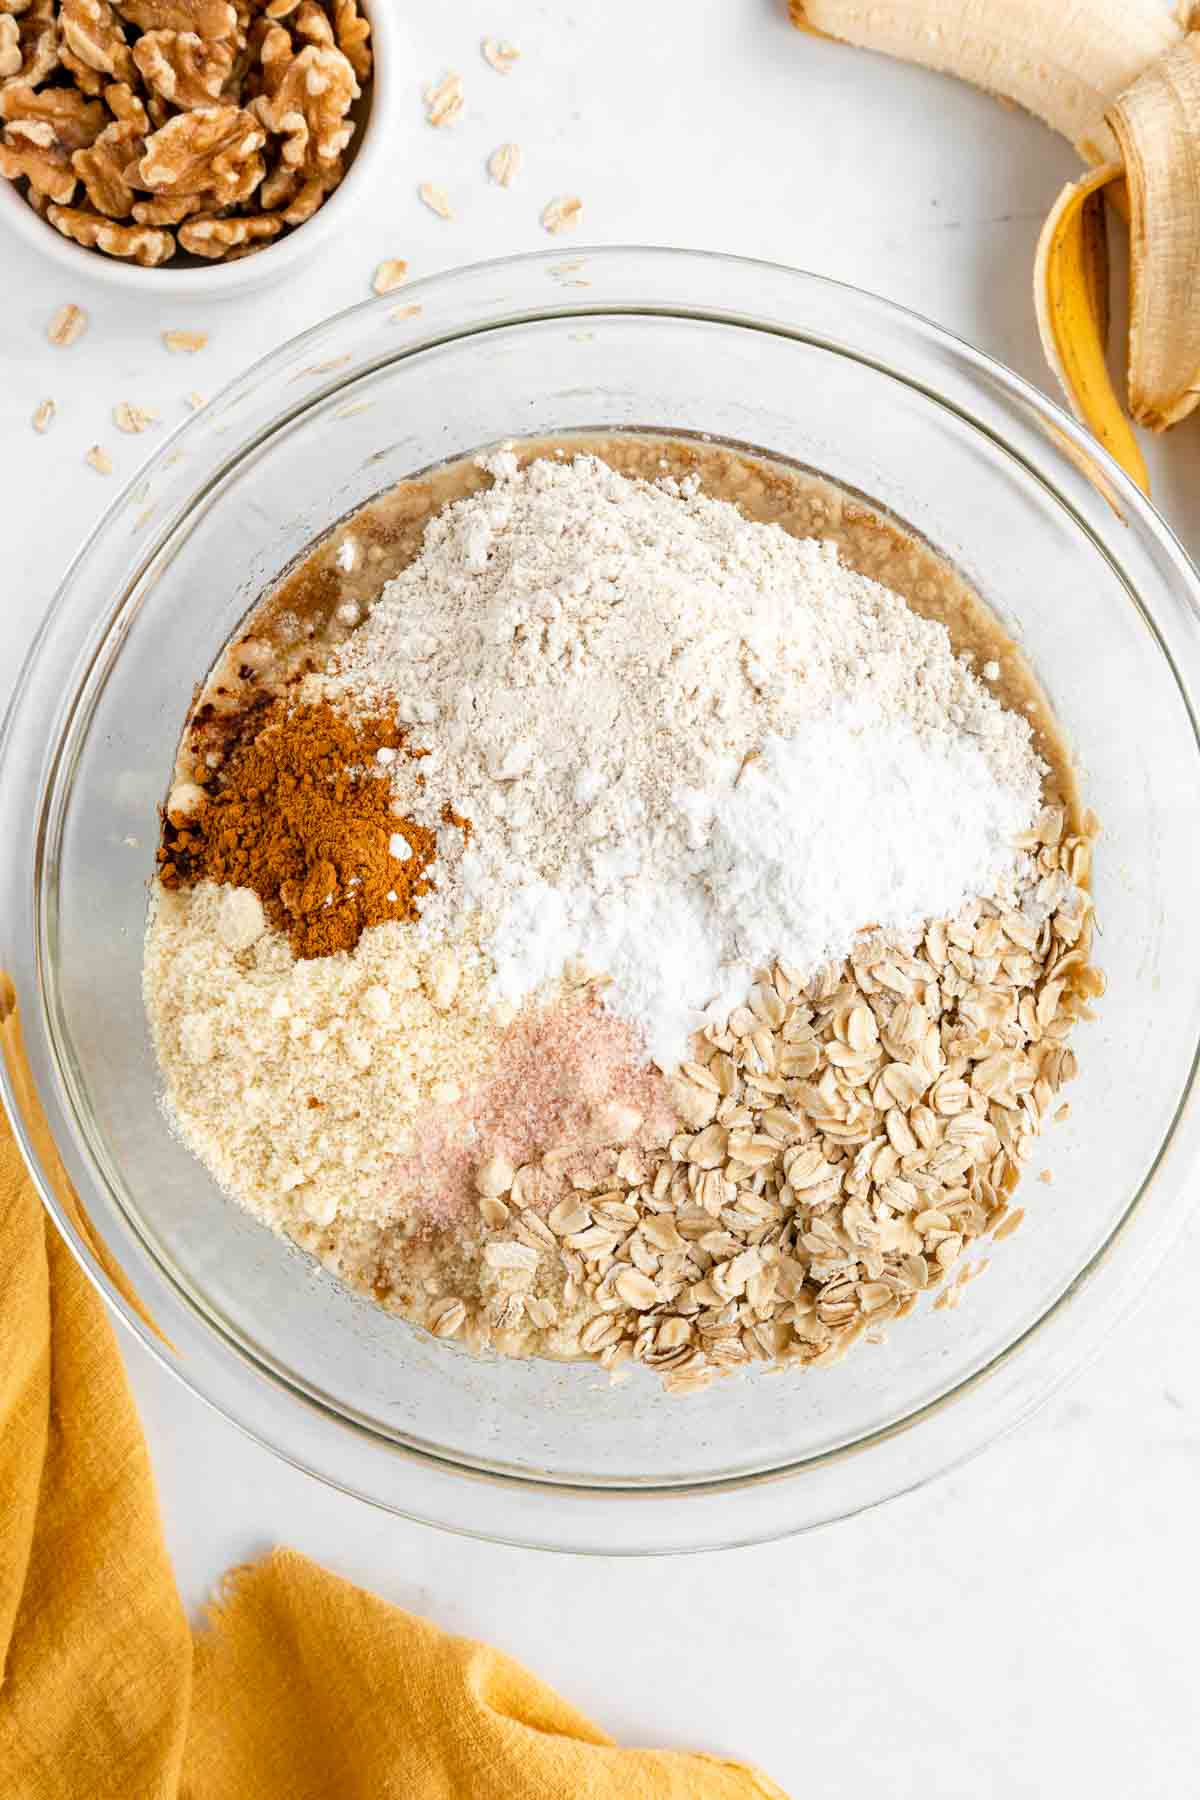 oat flour, almond flour, rolled oats, cinnamon, and salt in a mixing bowl